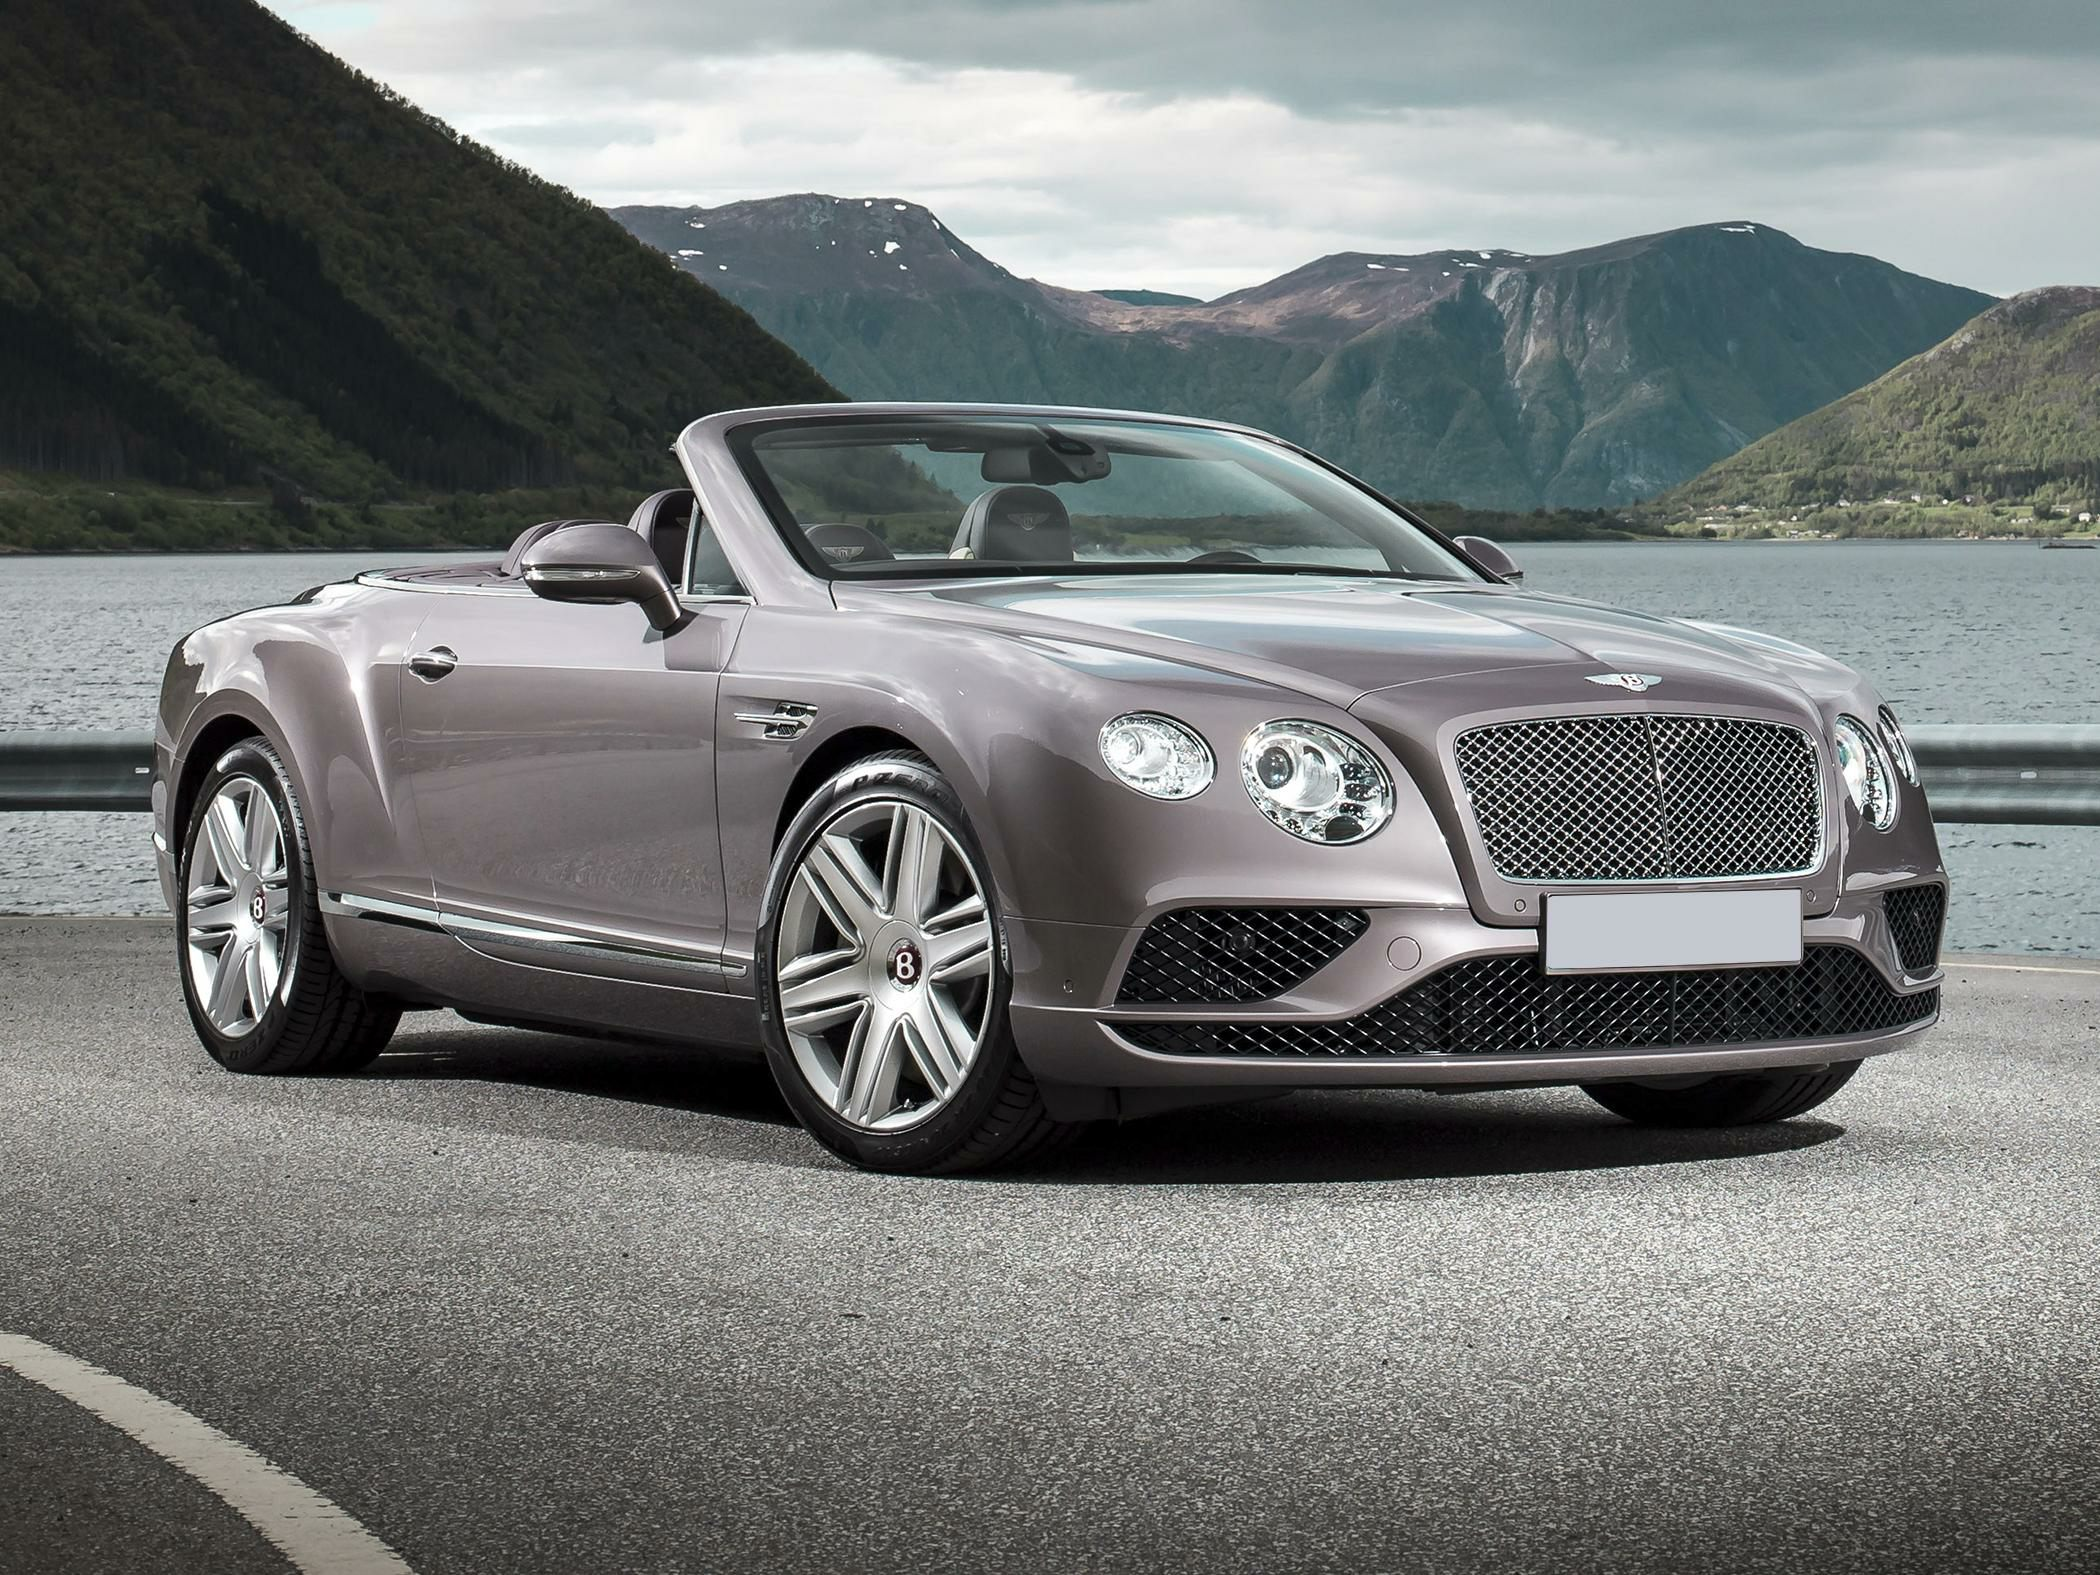 Img Usc Bec A on 2005 Bentley Continental Gt Mpg